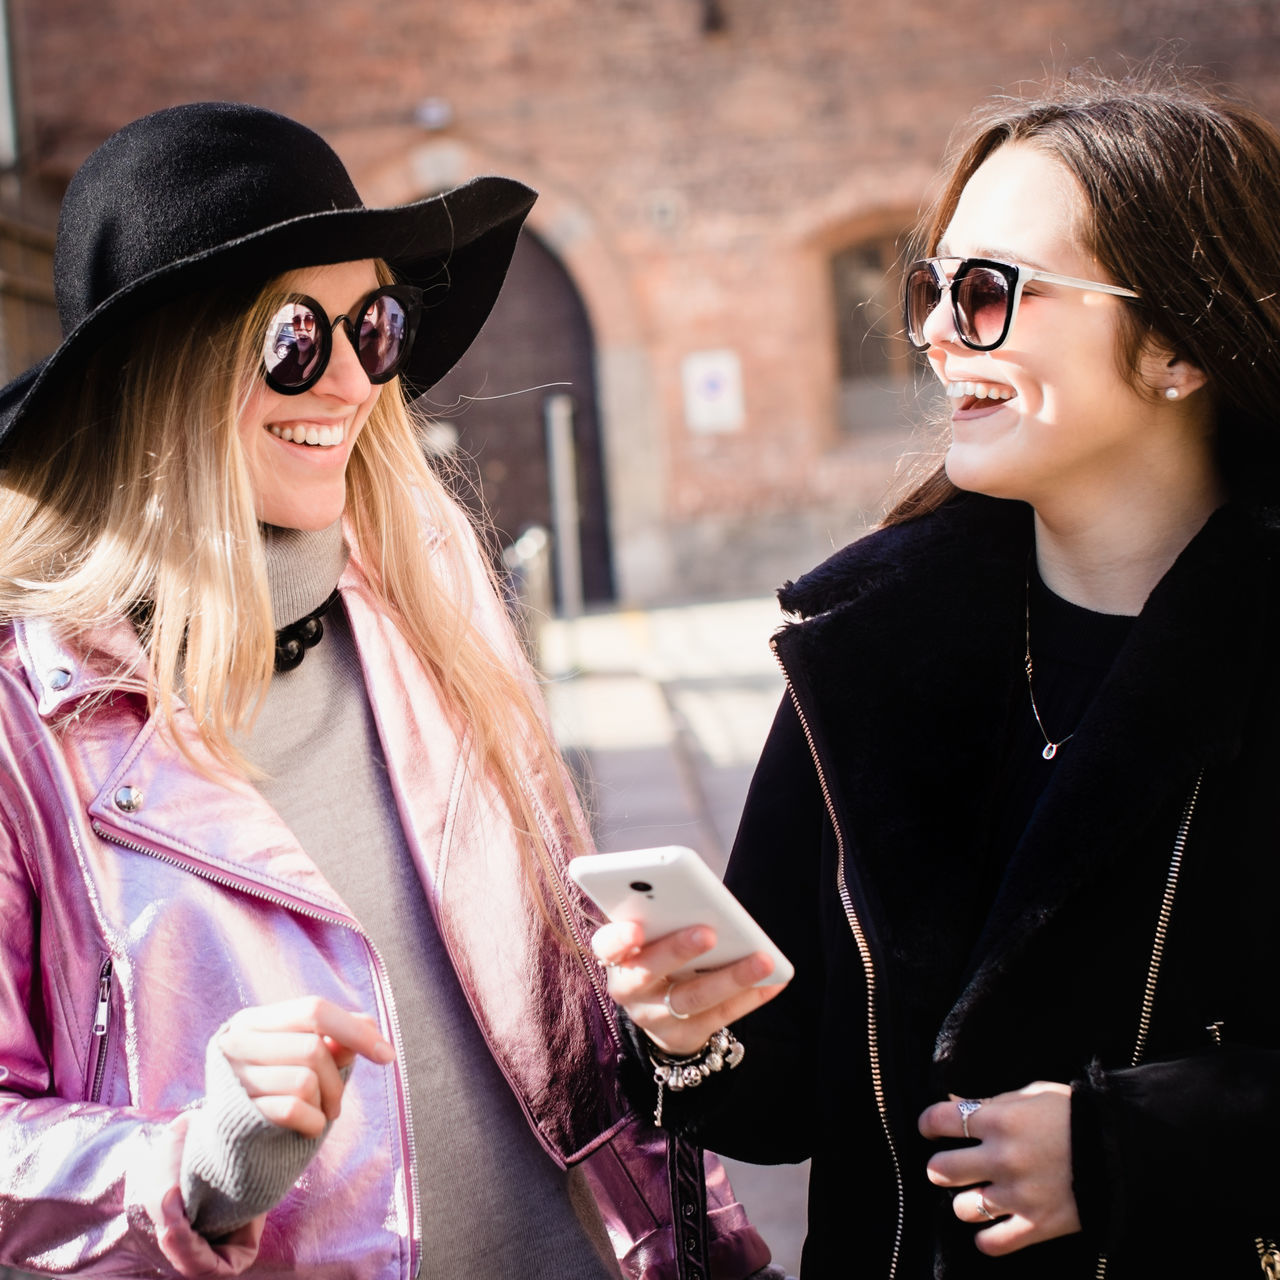 Adult Adults Only Blond Hair Cheerful Communication Day Fashion Friendship Internet Mobile Phone Only Women Outdoors People Portable Information Device Smart Phone Smiling Sunglasses Two People Wireless Technology Women Young Adult Young Women